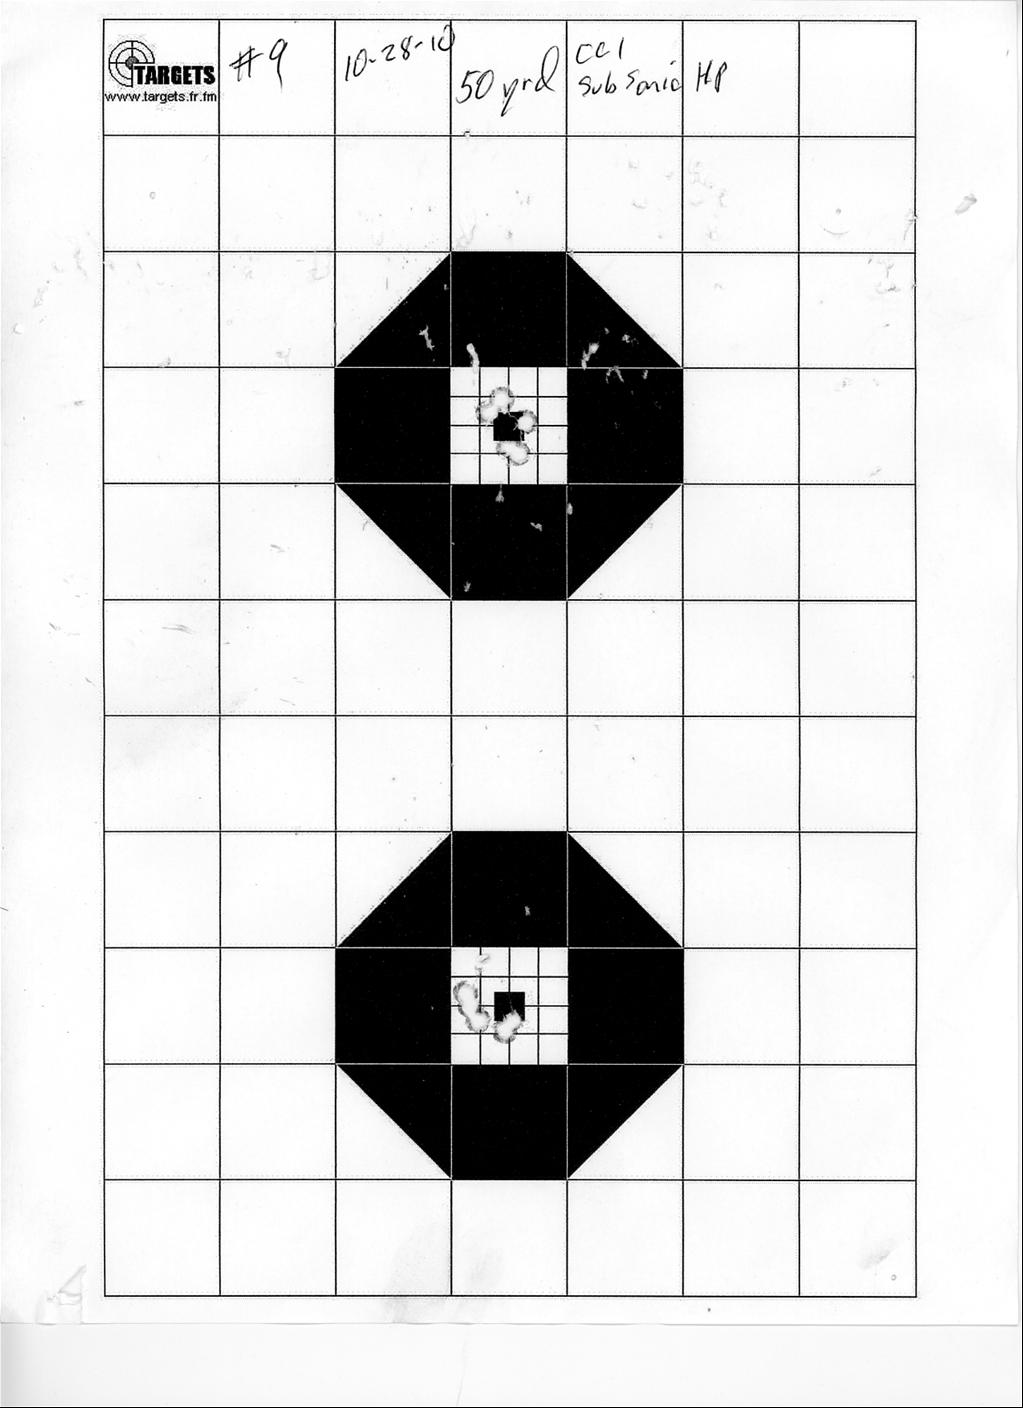 My 50 yard Range @ Home - Range Report